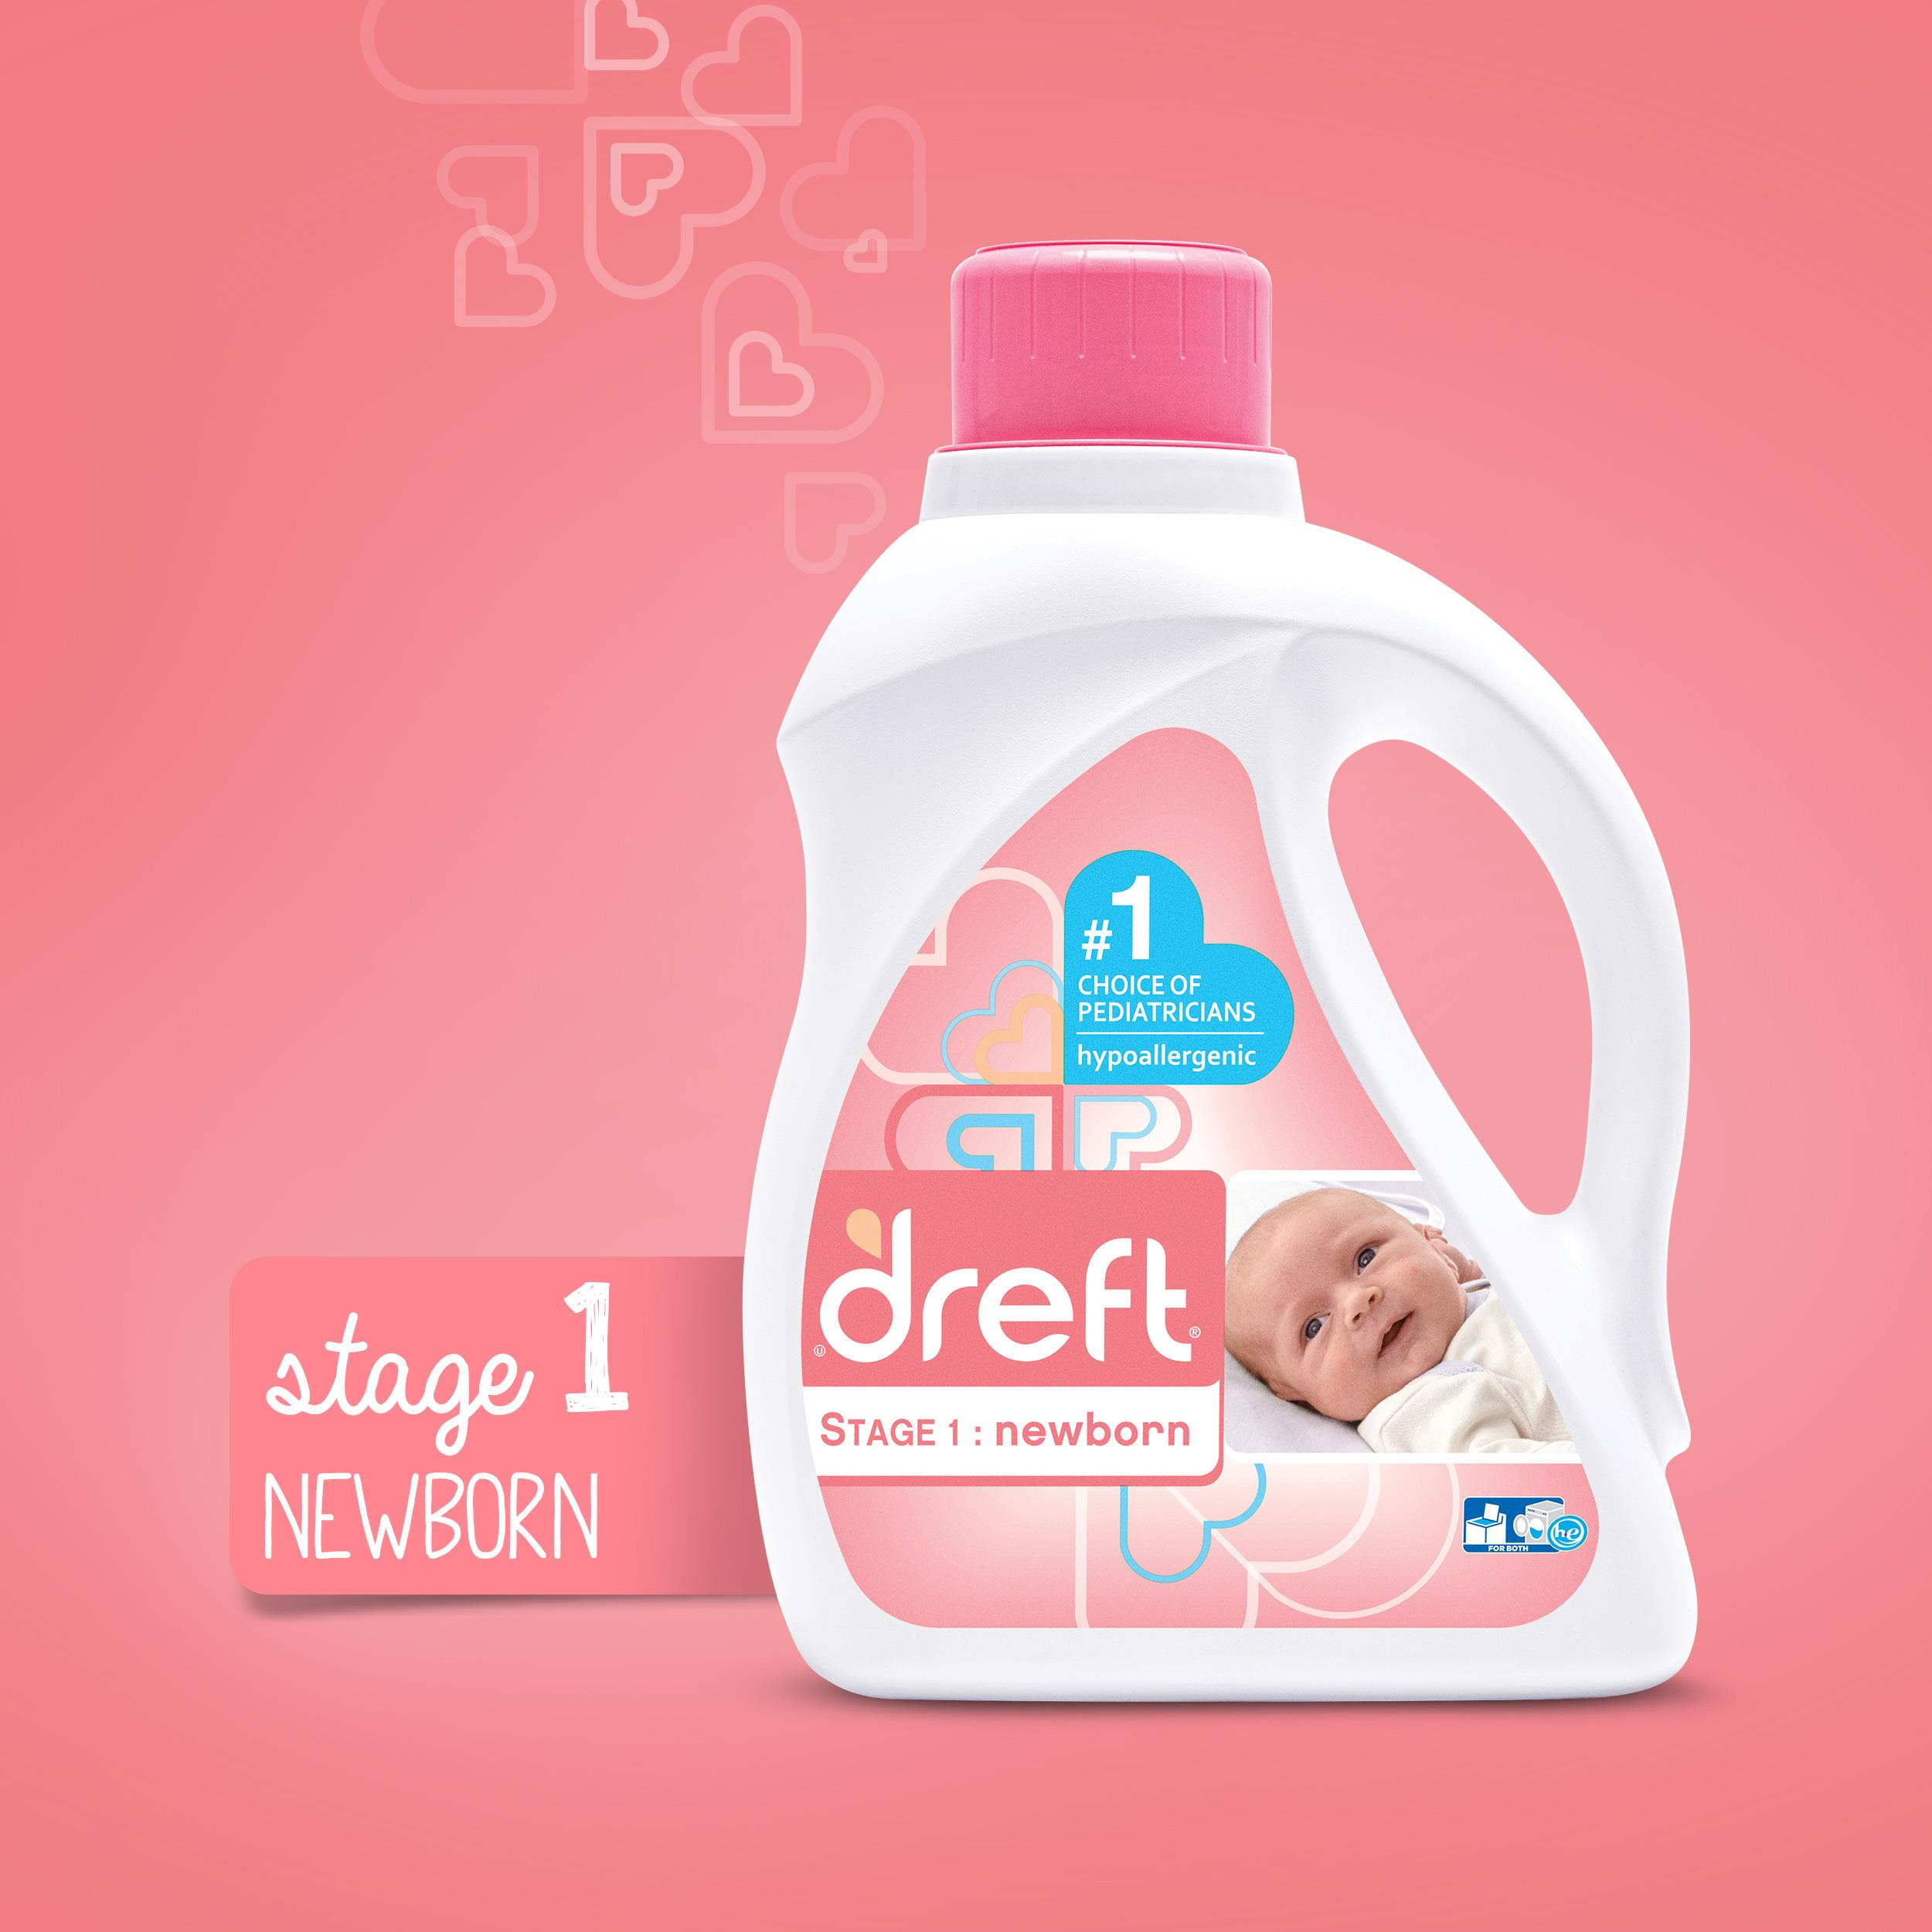 Laundry Bag For Baby Clothes Amazon Dreft Baby Liquid Laundry Detergent 32 Loads